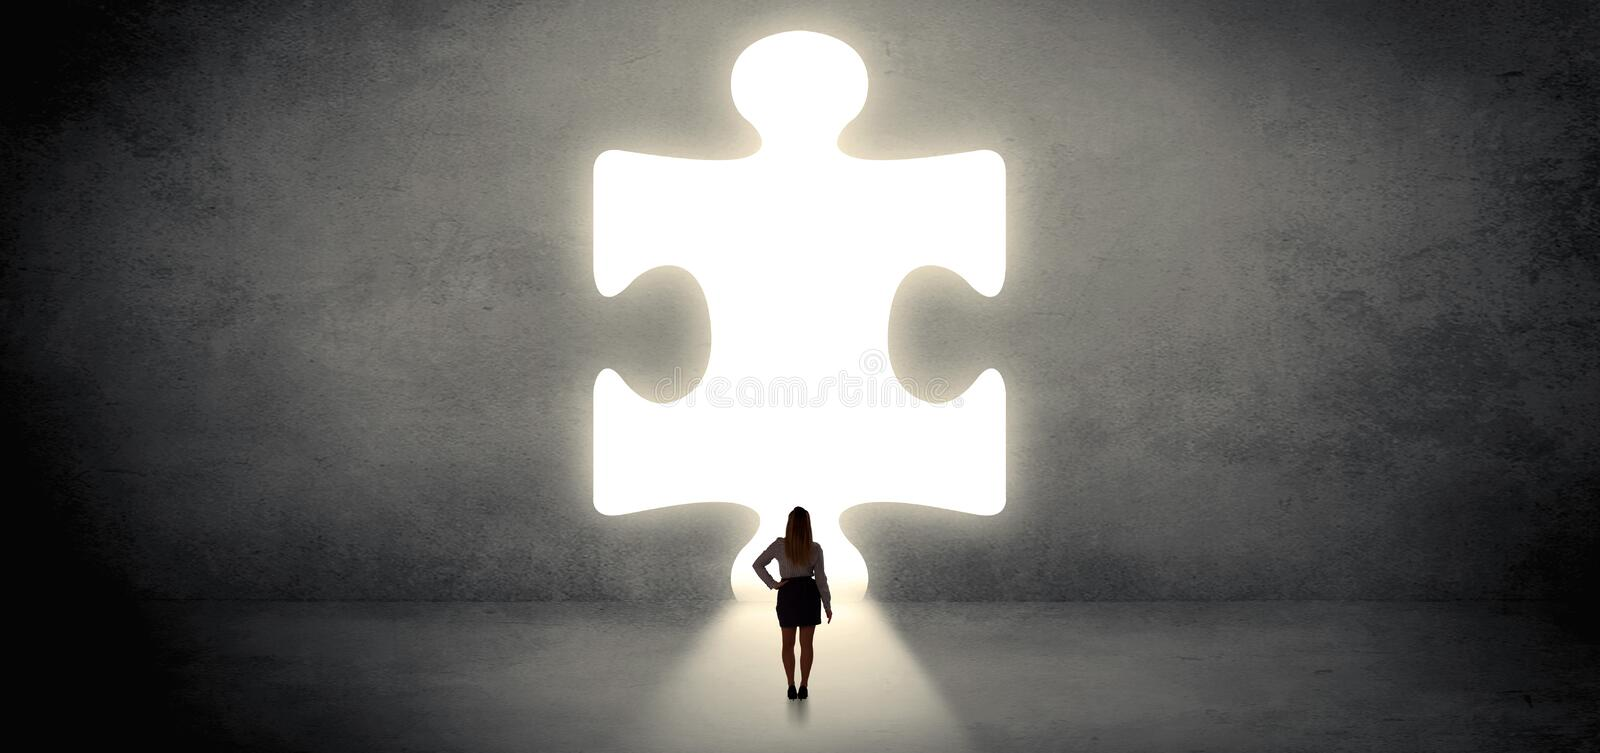 Woman standing in front of a big puzzle piece royalty free stock photography